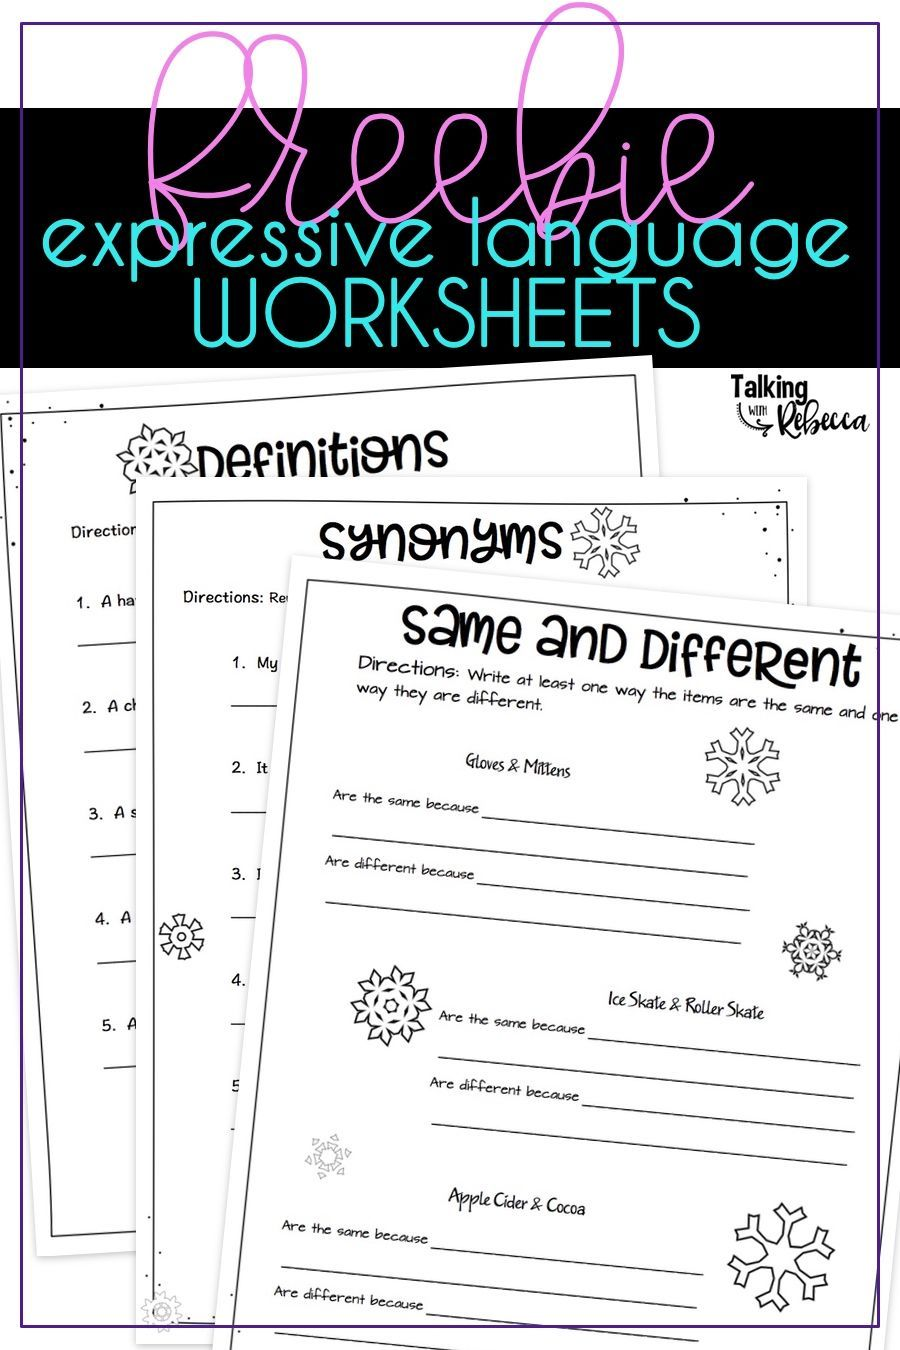 Free Worksheets For Winter Speech Therapy Language Worksheets Winter Speech Therapy Expressive Language